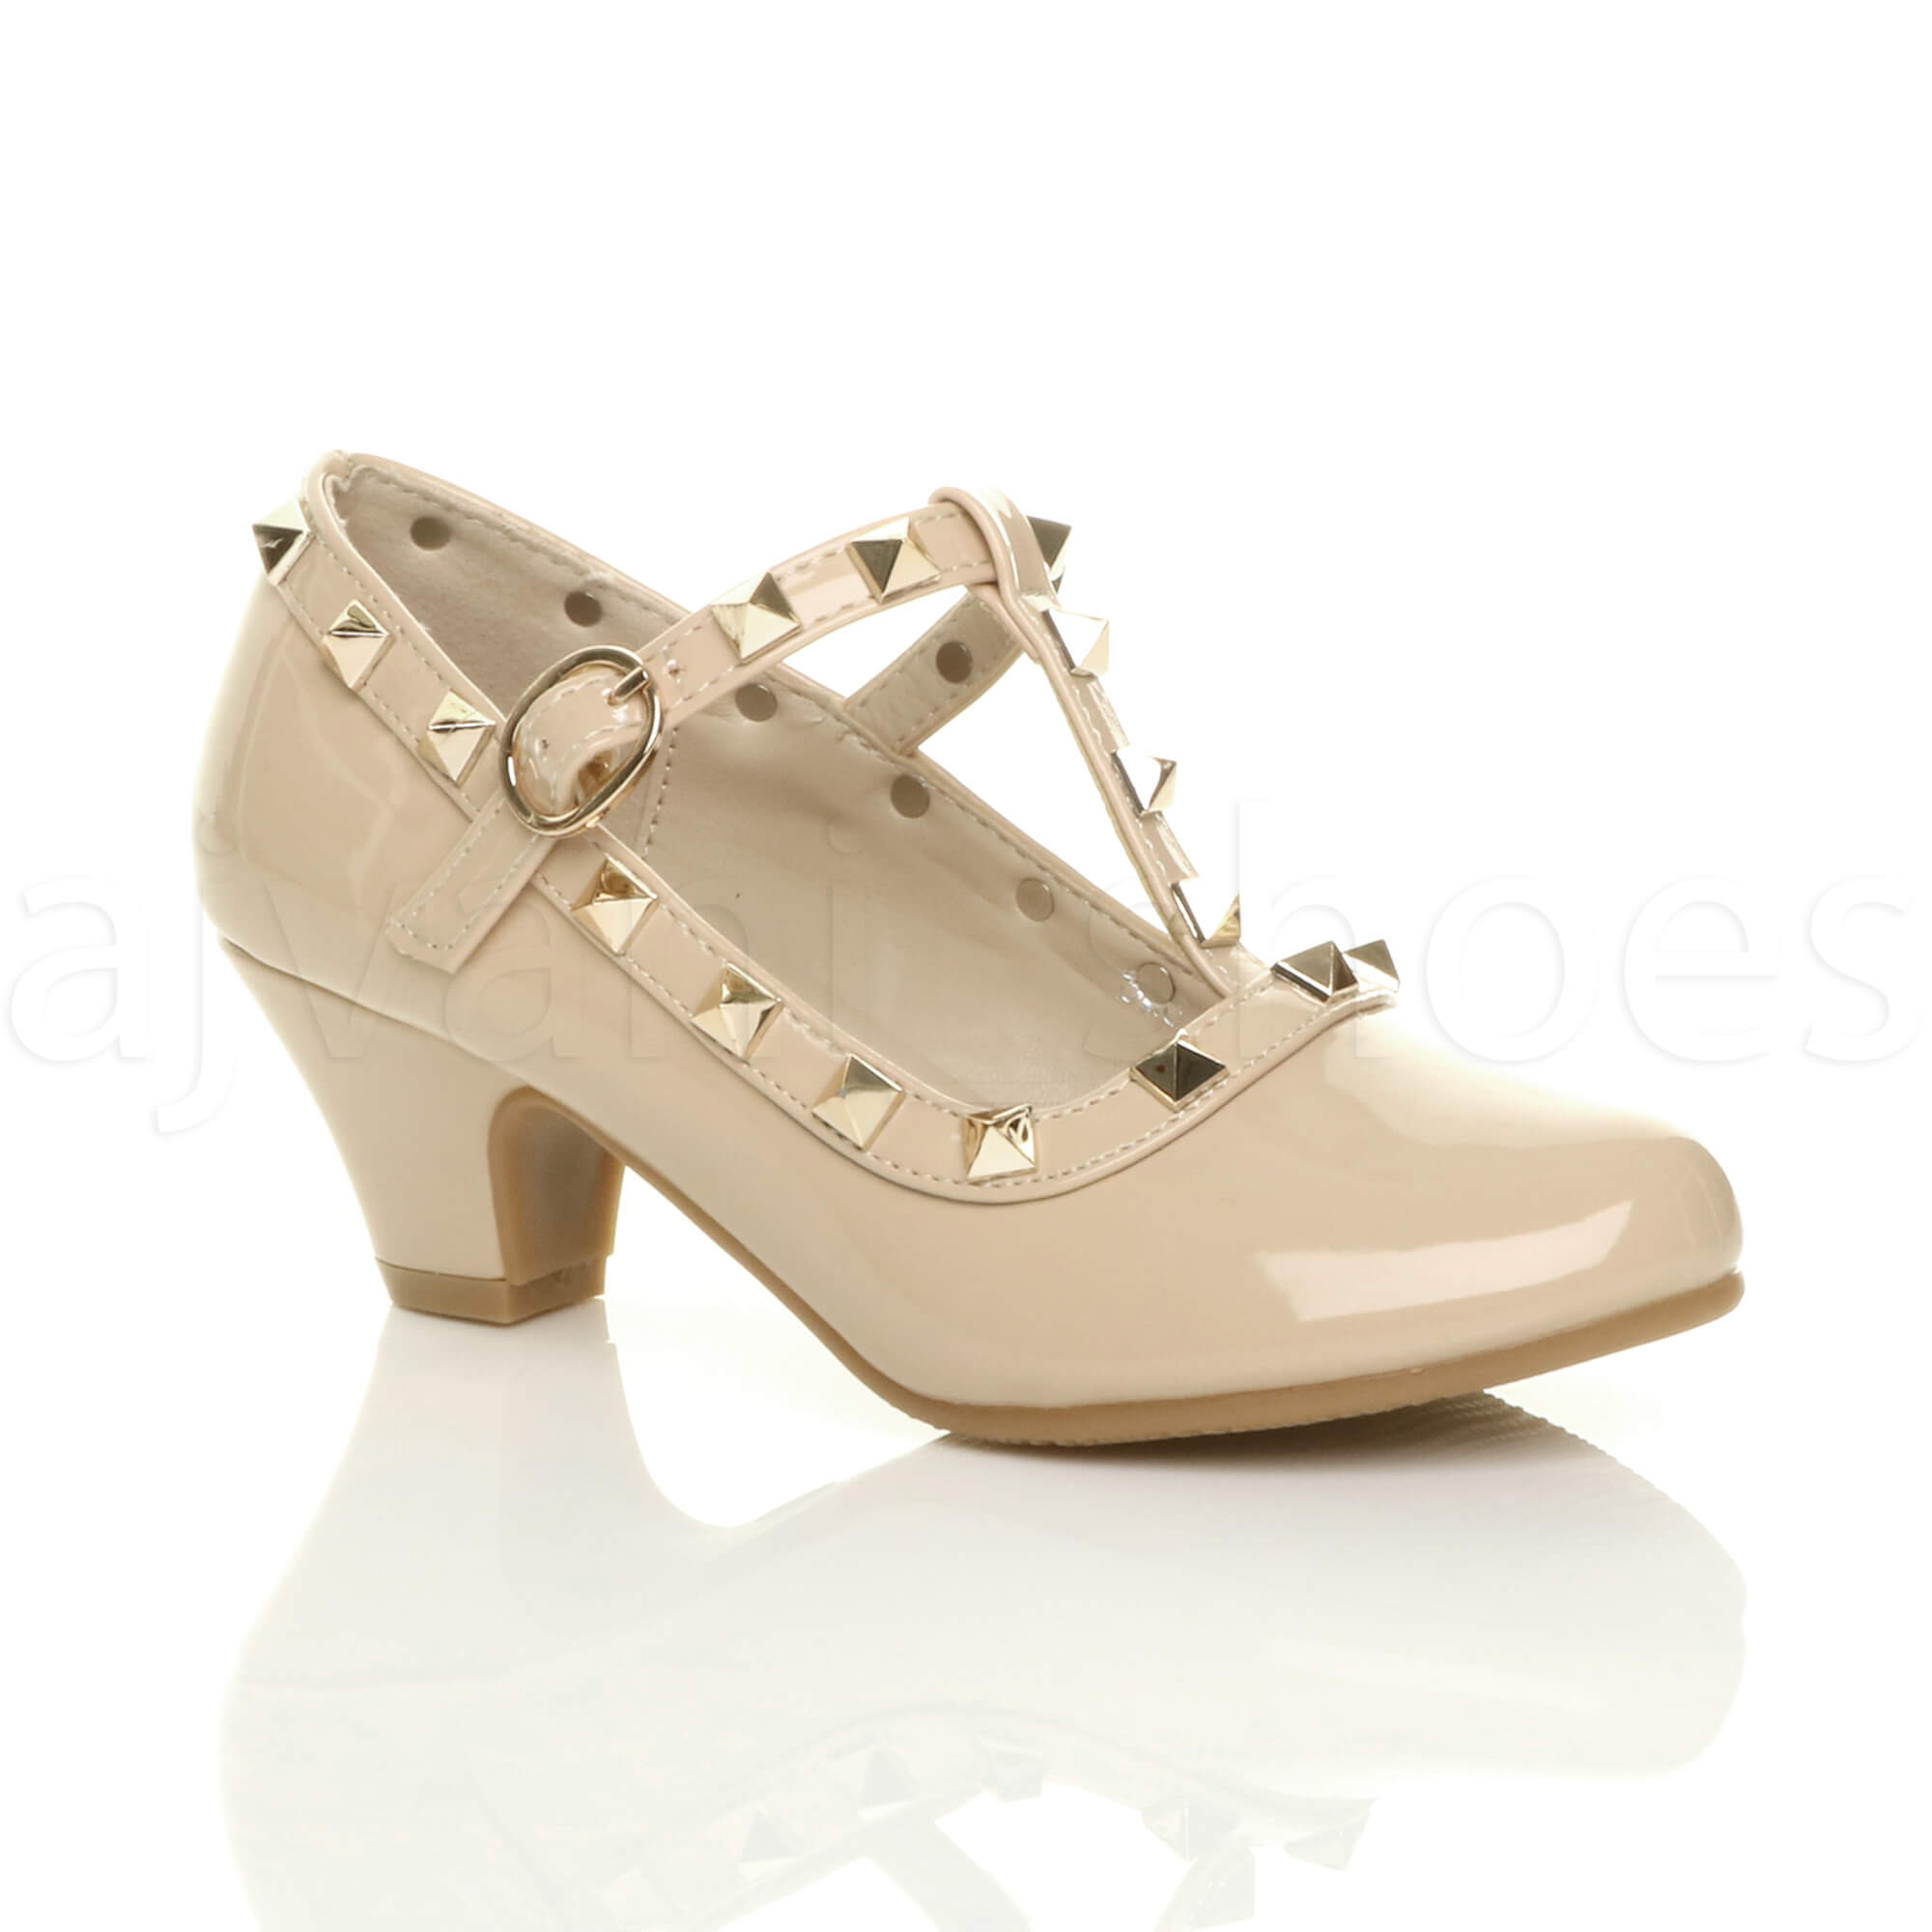 GIRLS-KIDS-CHILDRENS-LOW-MID-HEEL-STUDDED-T-BAR-MARY-JANE-PARTY-COURT-SHOES-SIZE